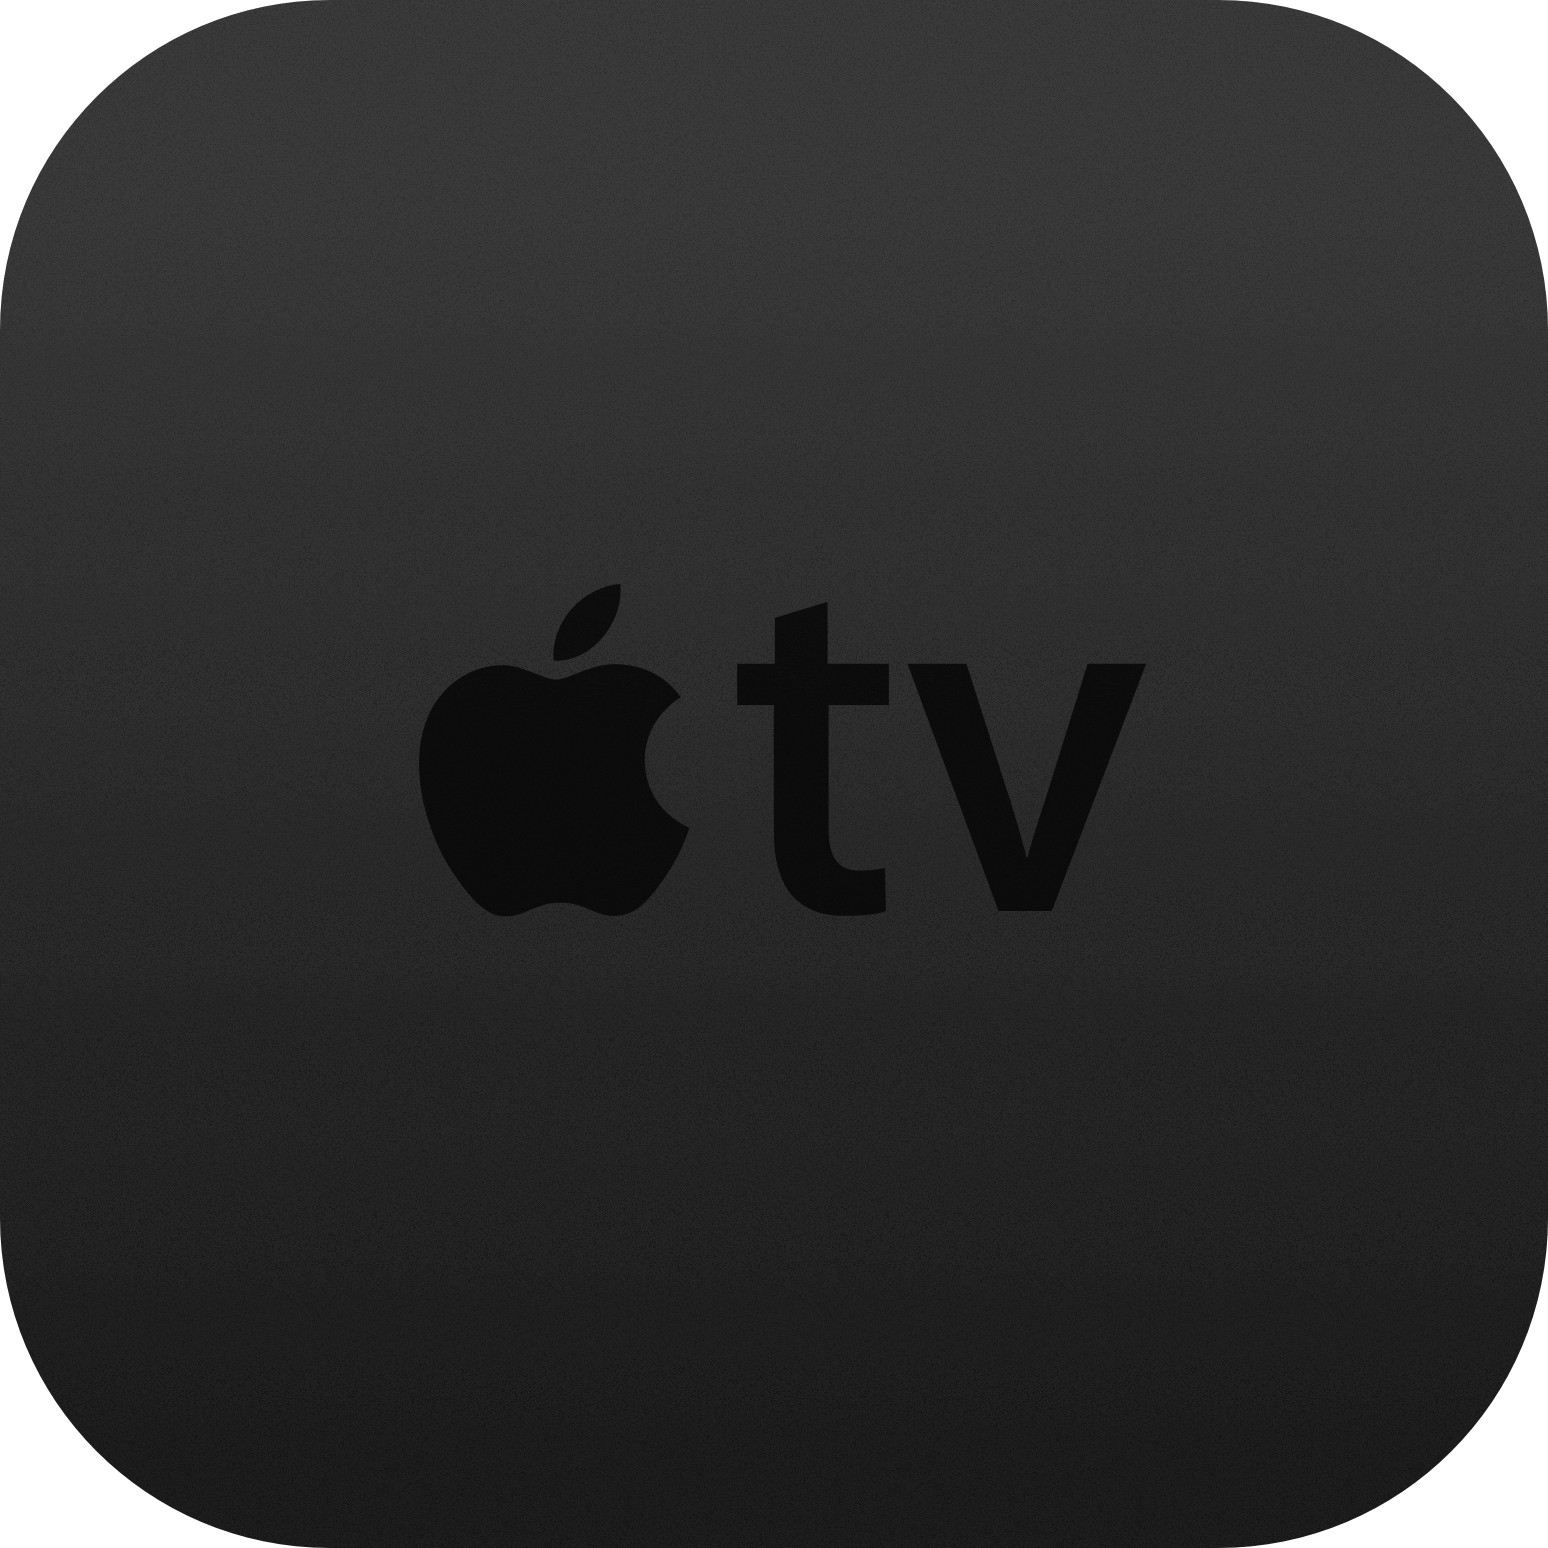 apple TV device for use with dental waiting room tv